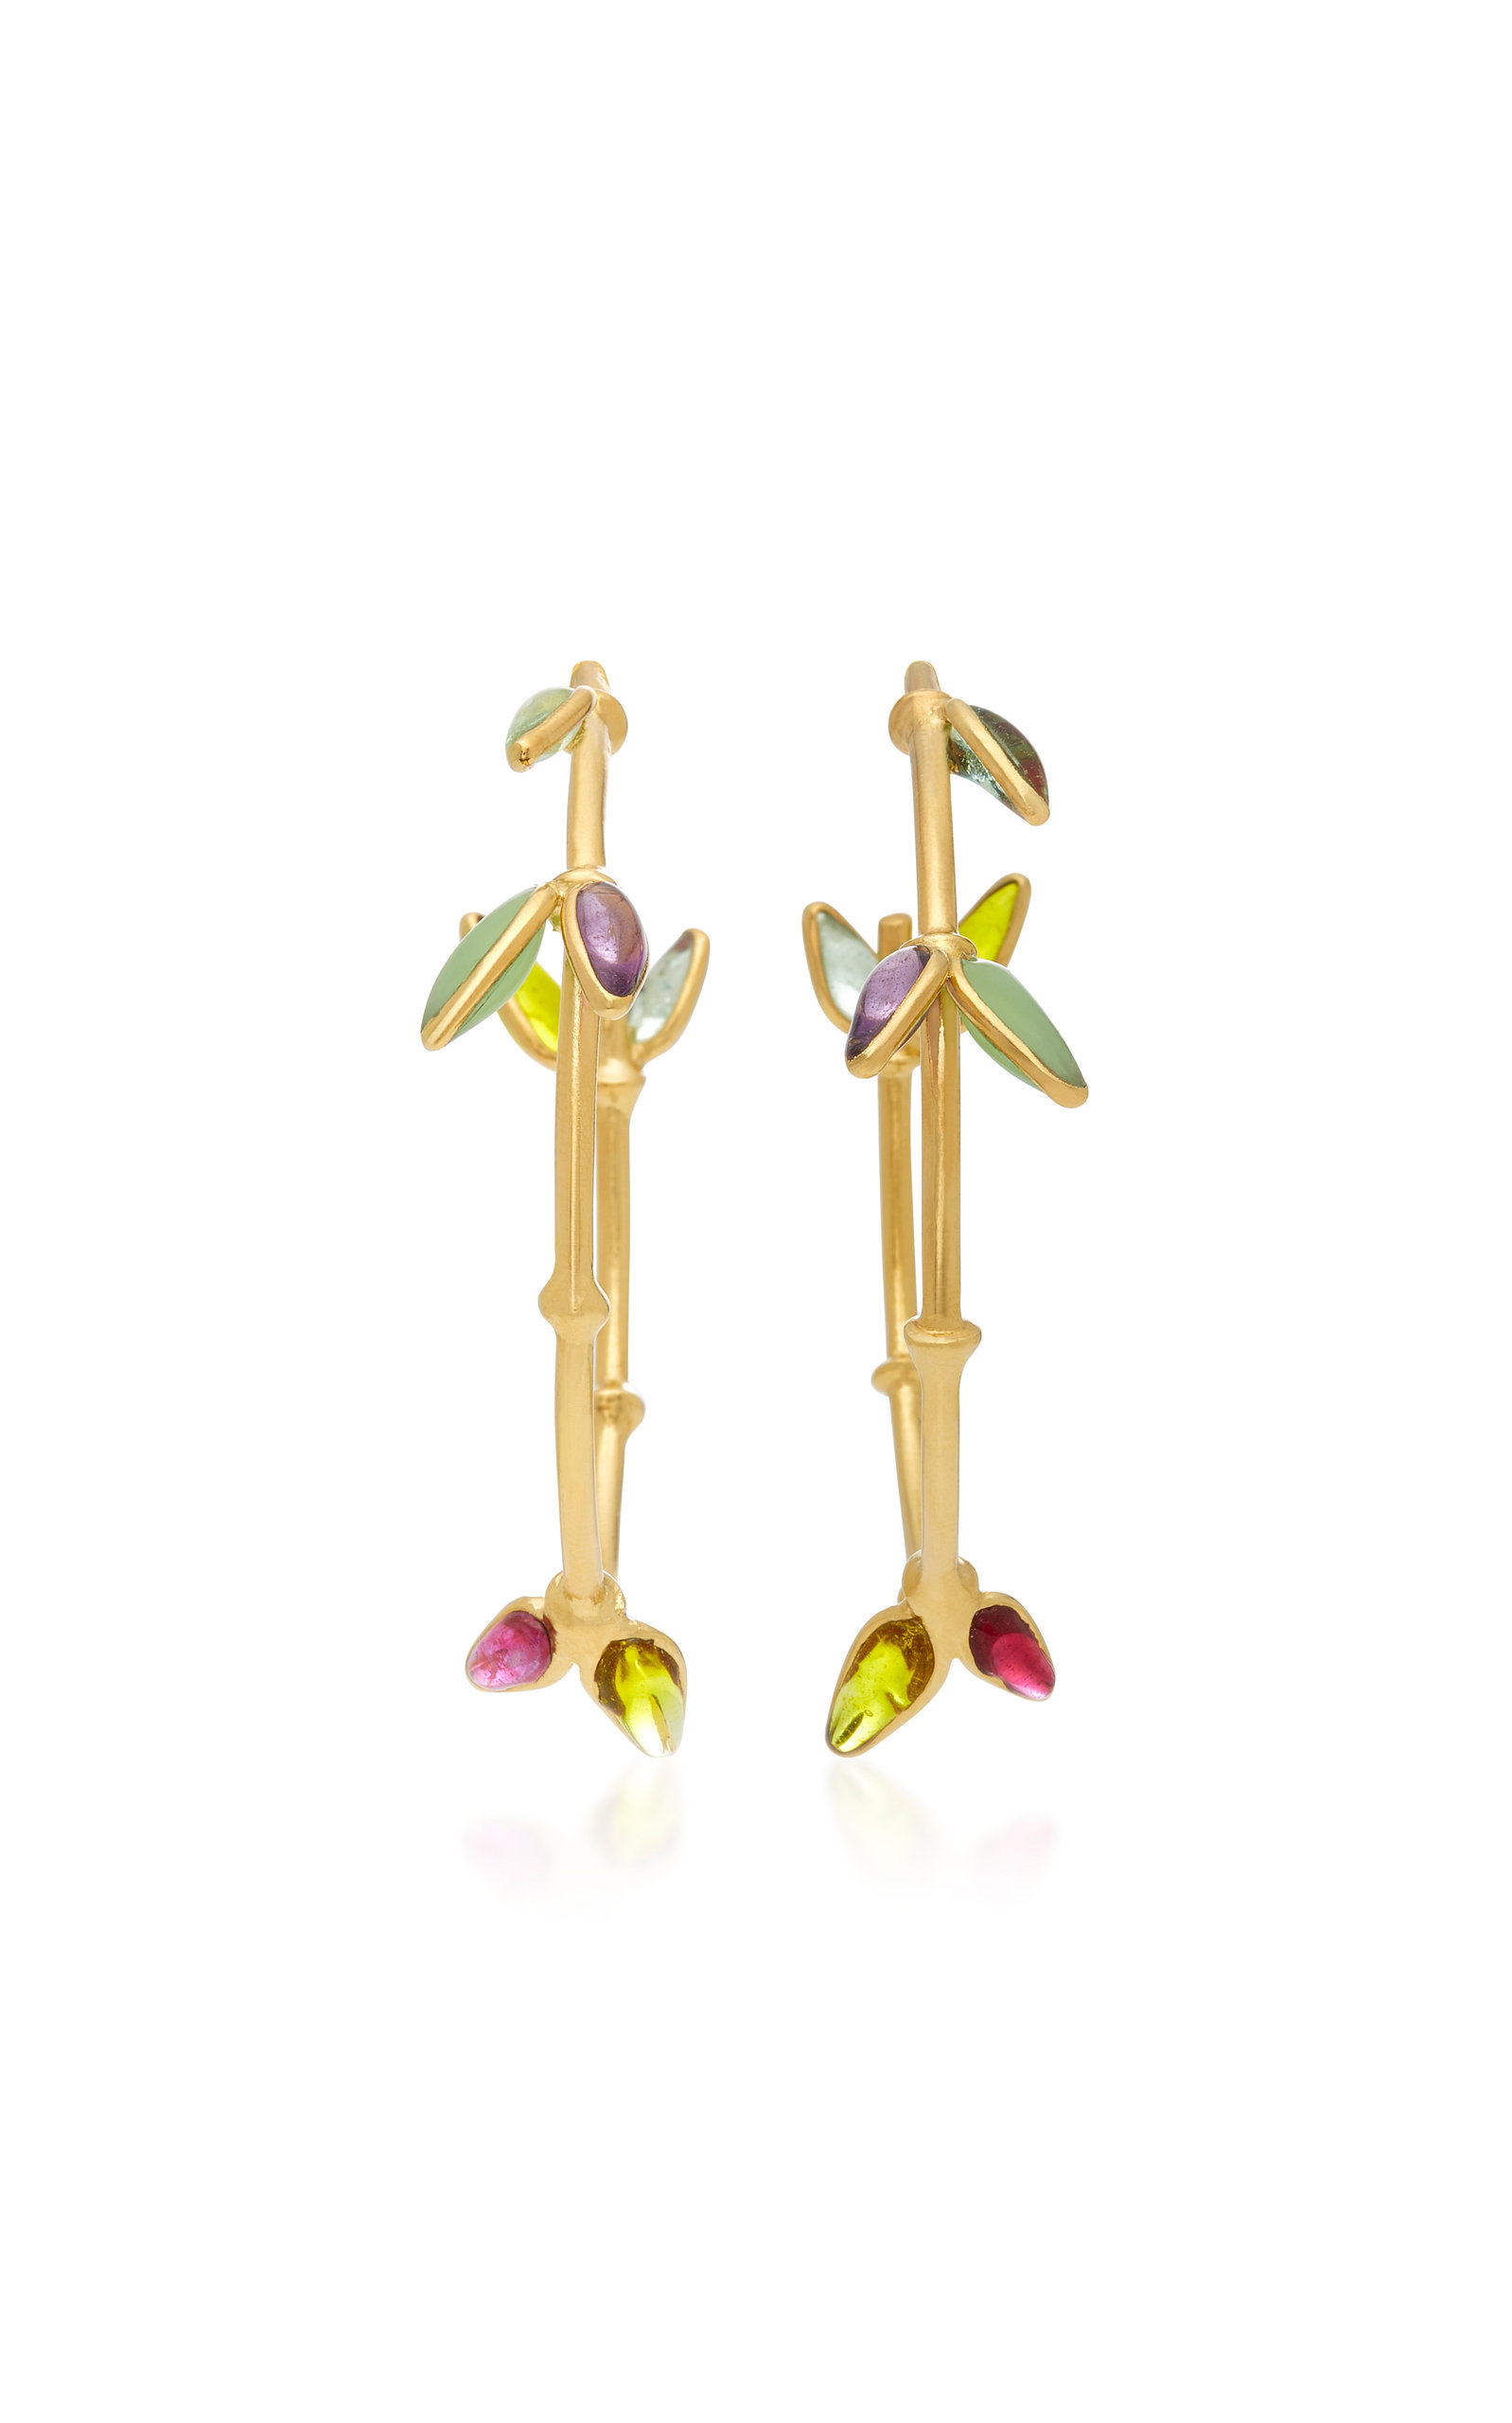 Bamboo Creole 24K Gold-Plated Brass and Poured Glass Pierced Earrings Gripoix q35KH